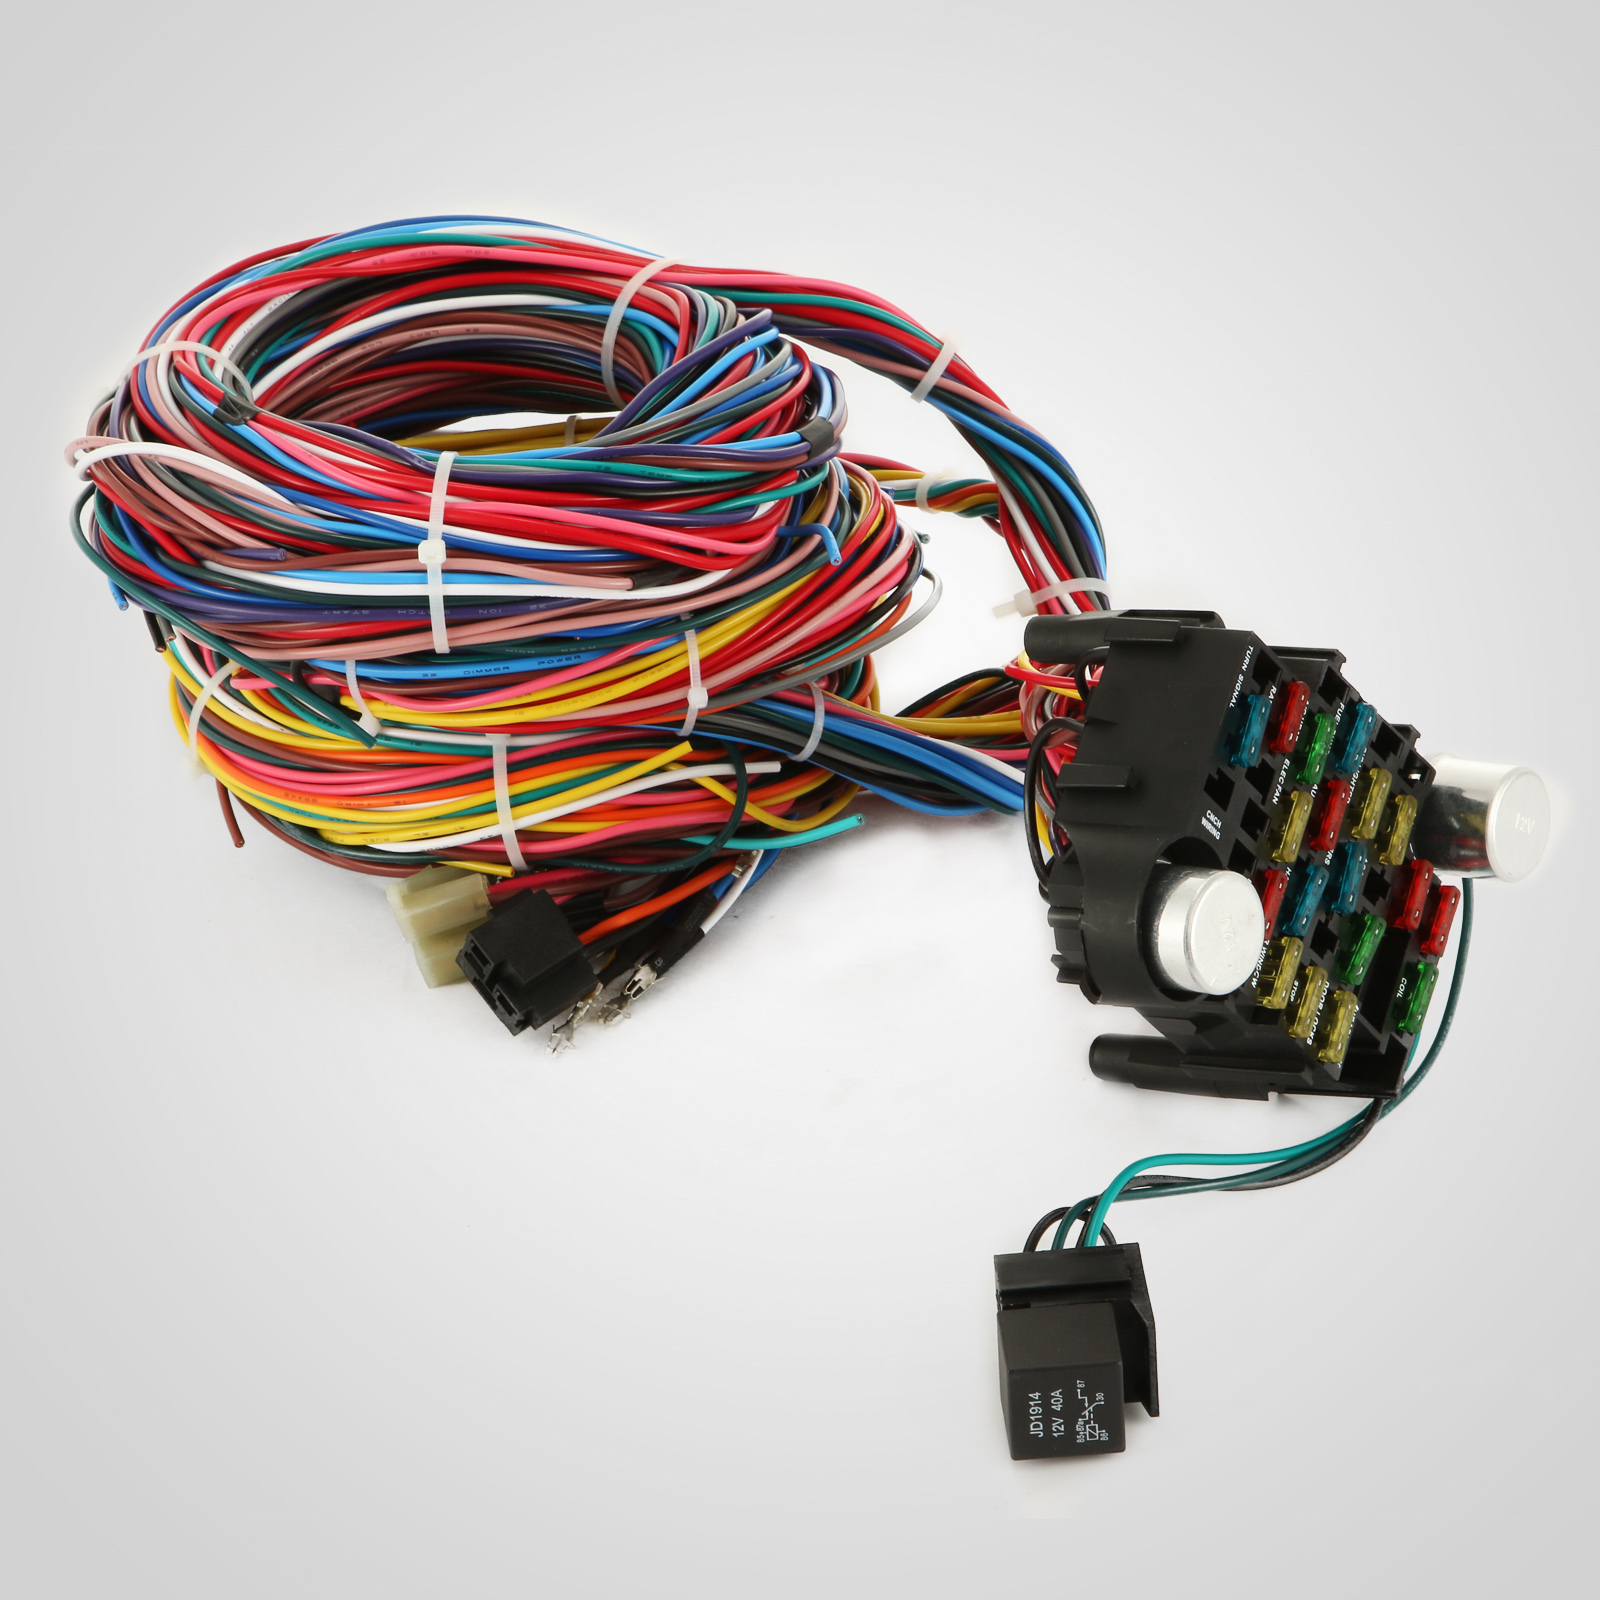 ez wiring 21 circuit harness ply hot rod wiring 21 circuit schematic 21 circuit ez wiring harness chevy universal wires install ...